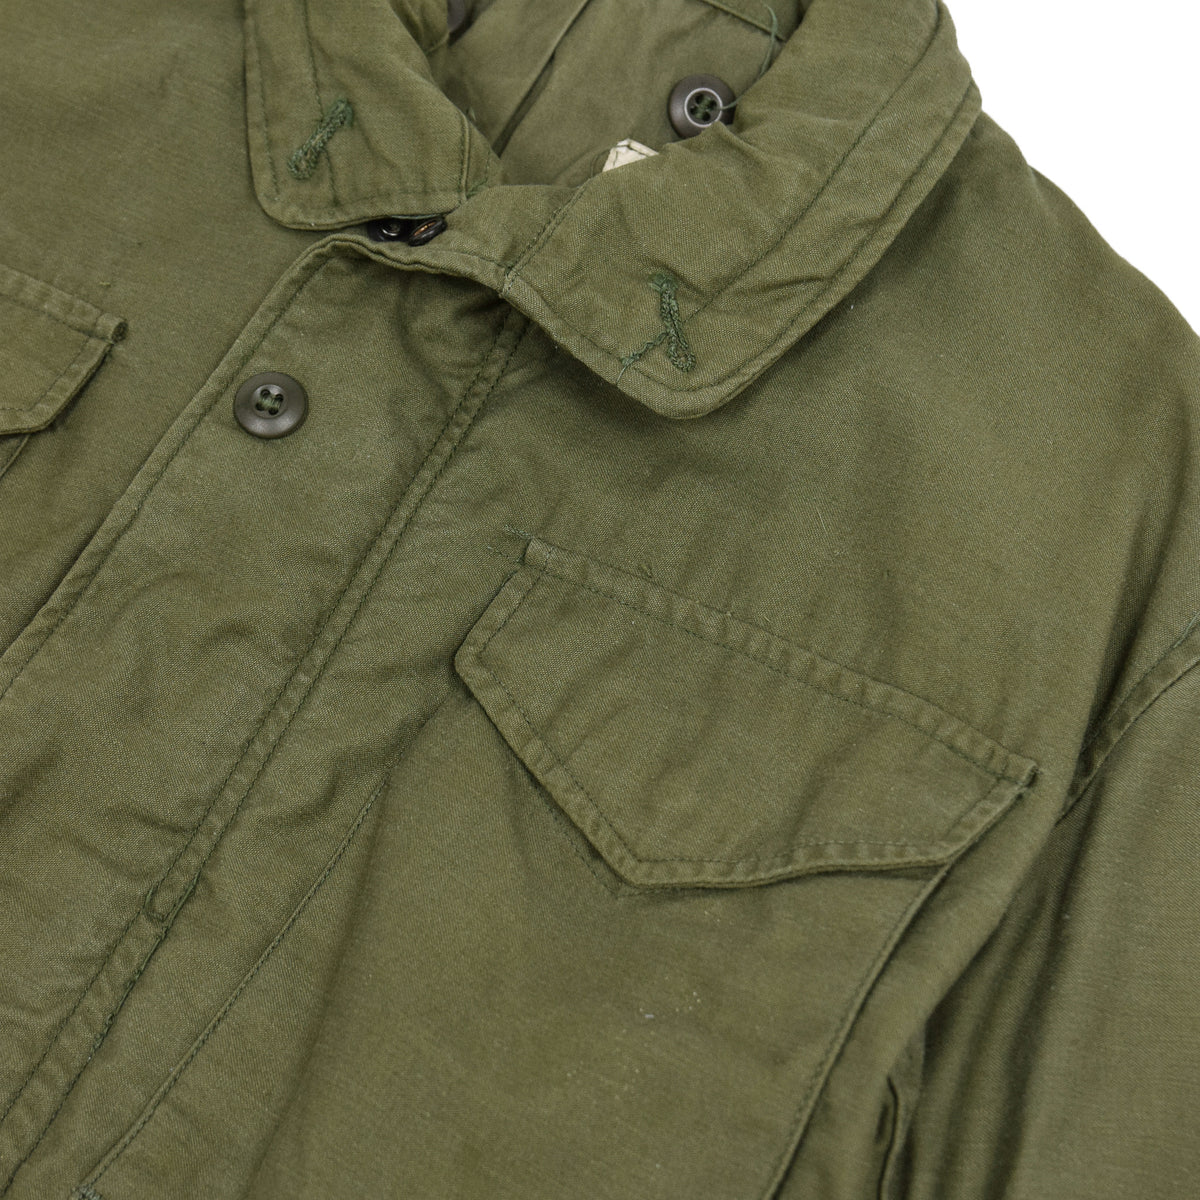 Vintage 60s Vietnam M-65 Man's Field Sateen 0G-107 Green US Army Coat S collar